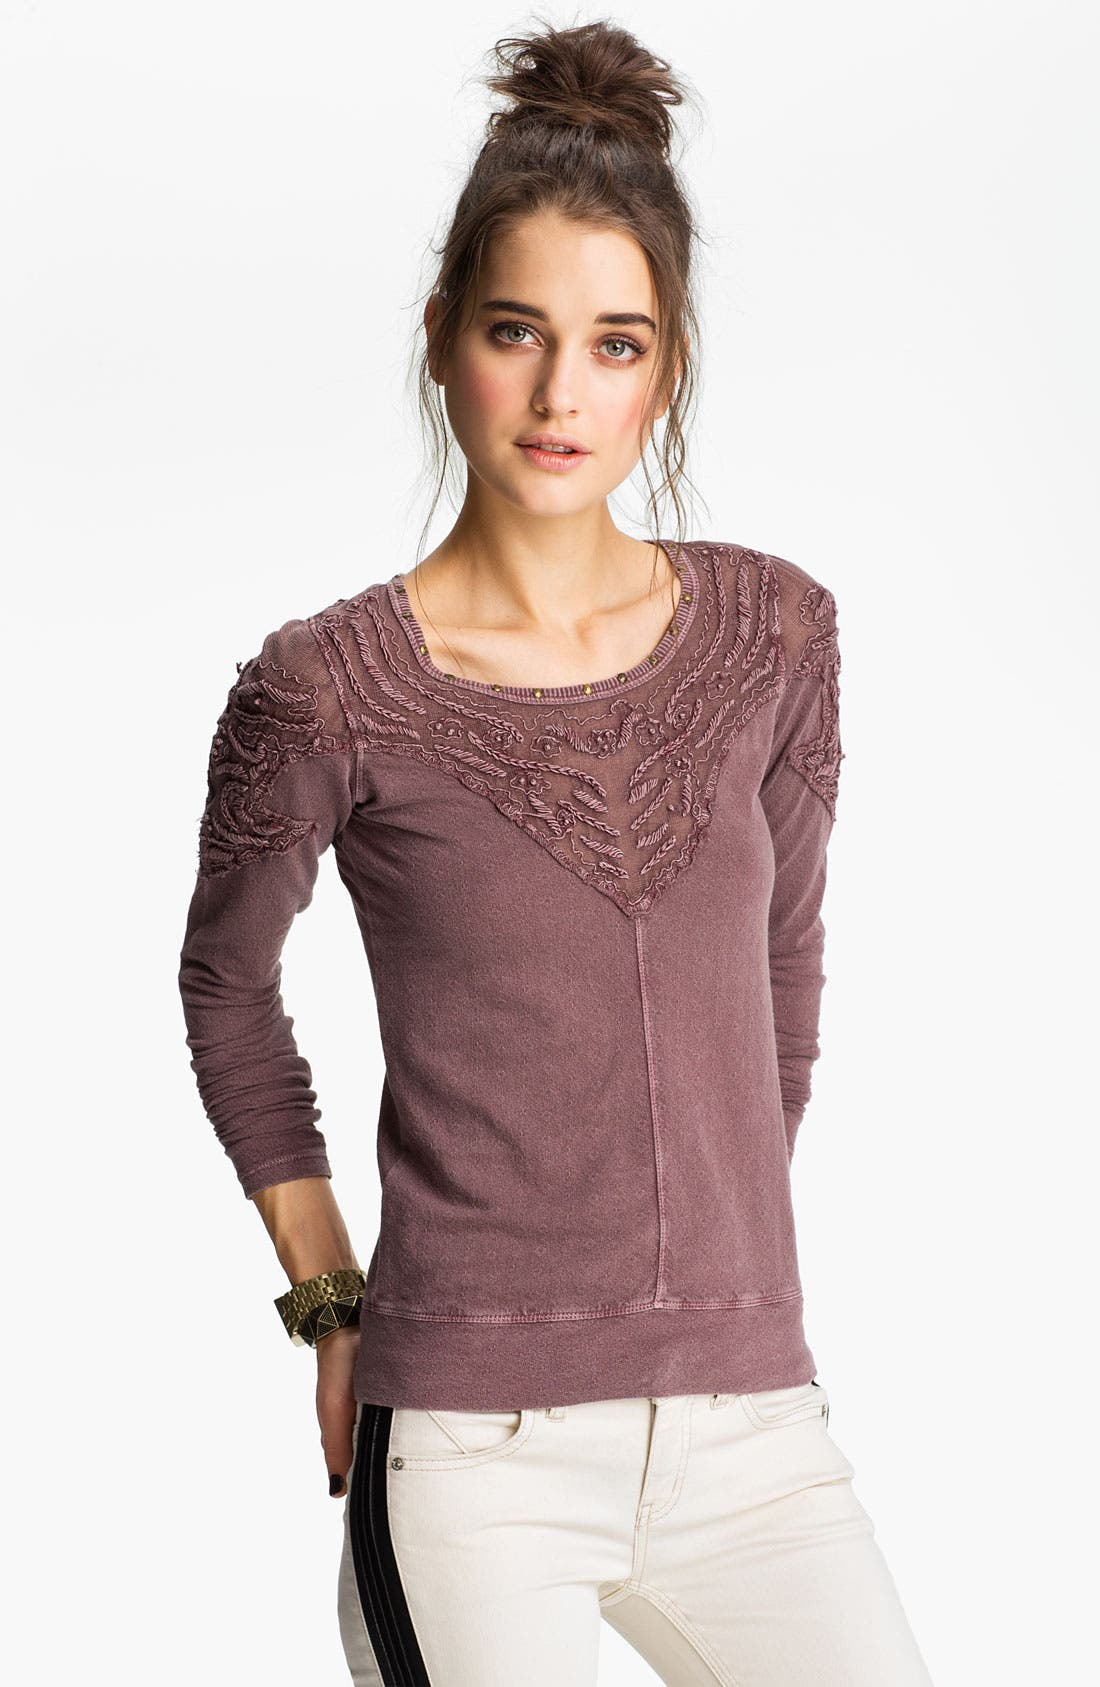 Main Image - Free People 'Barton Springs' Embroidered Shoulder Top